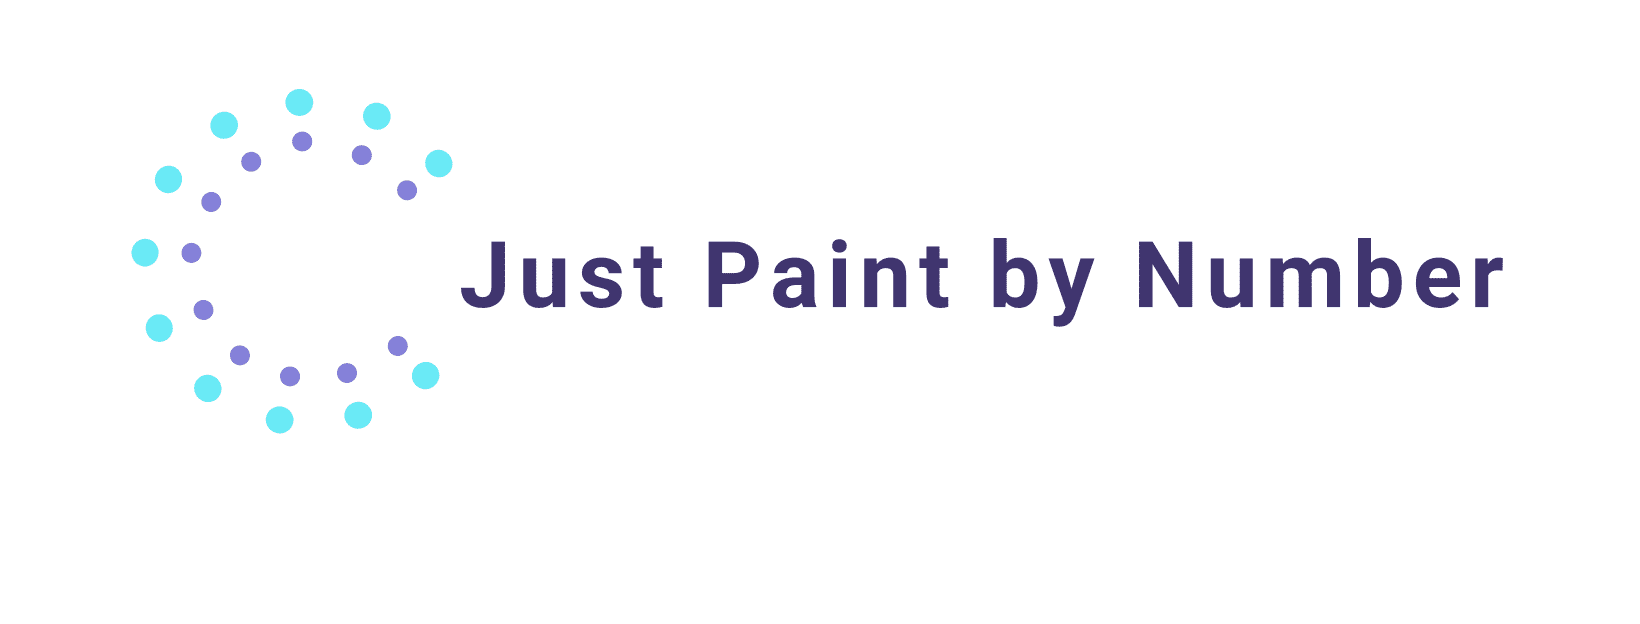 Welcome to Just Paint by Number! - Just Paint by Number